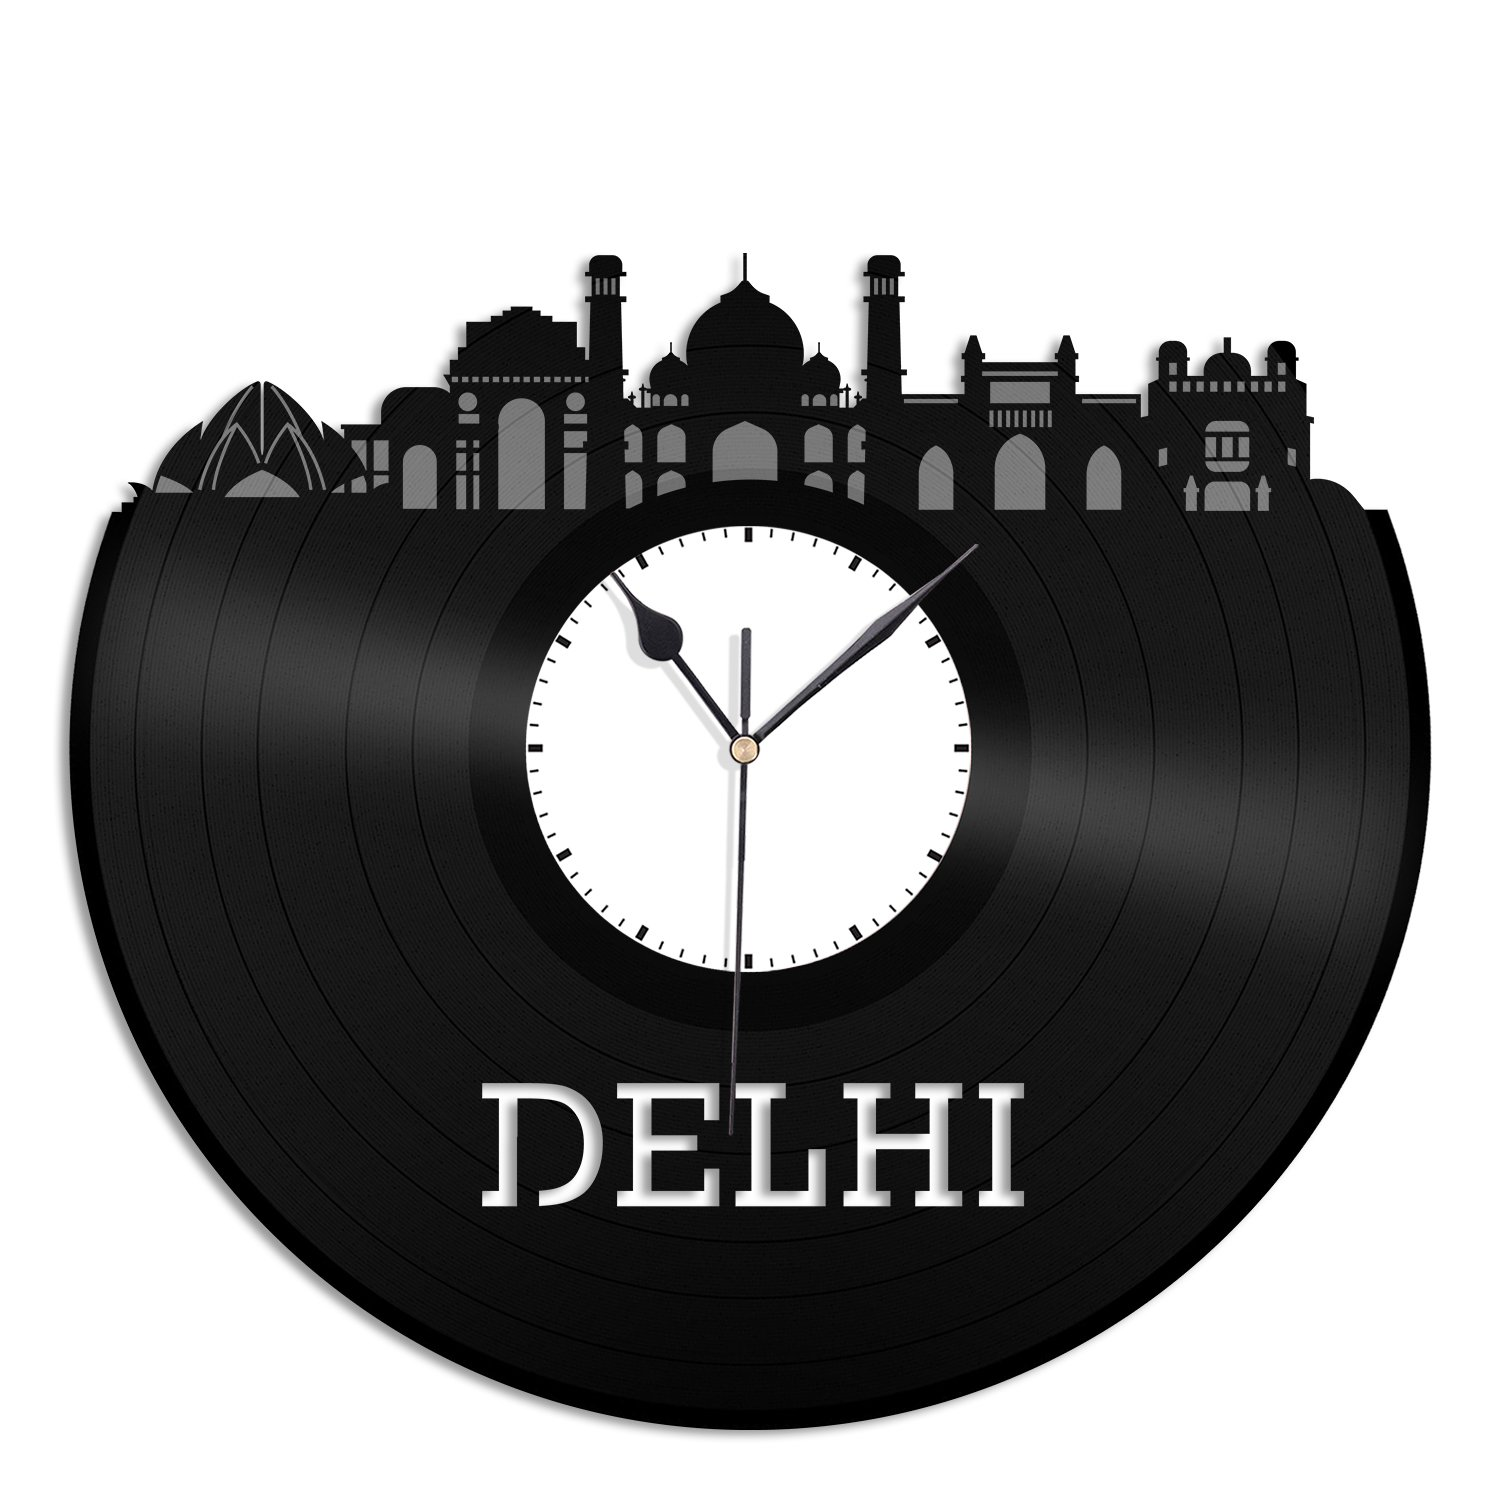 VinylShopUS - Delhi Vinyl Wall Clock City Skyline Capital of India Unique Gift For Home Room Decoration